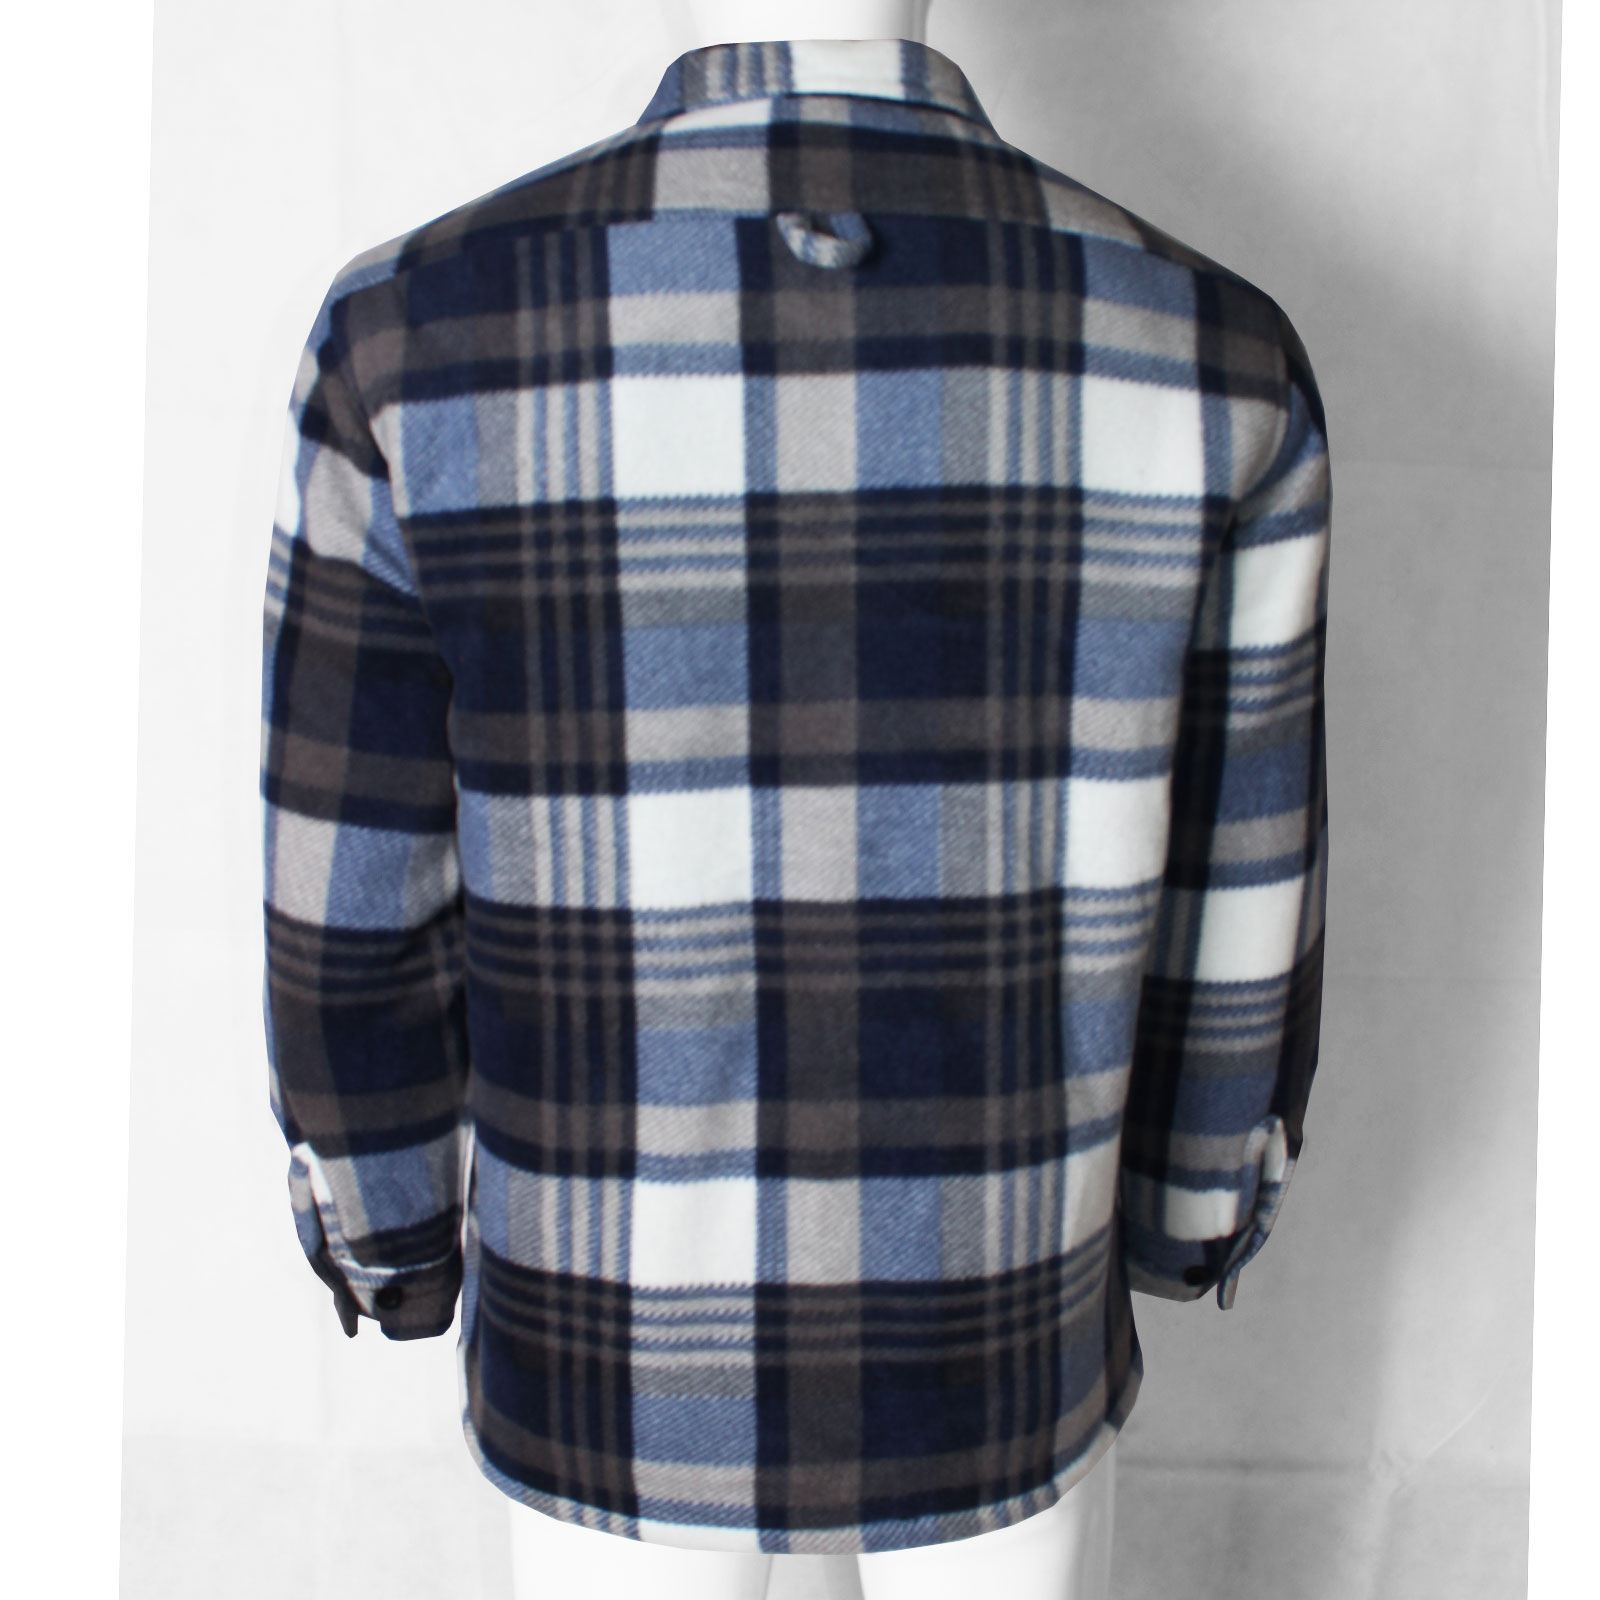 MENS FLEECE PADDED SHIRTS LINED SHERPA THICK LUMBER JACK WORK WARM WINTER TOPS